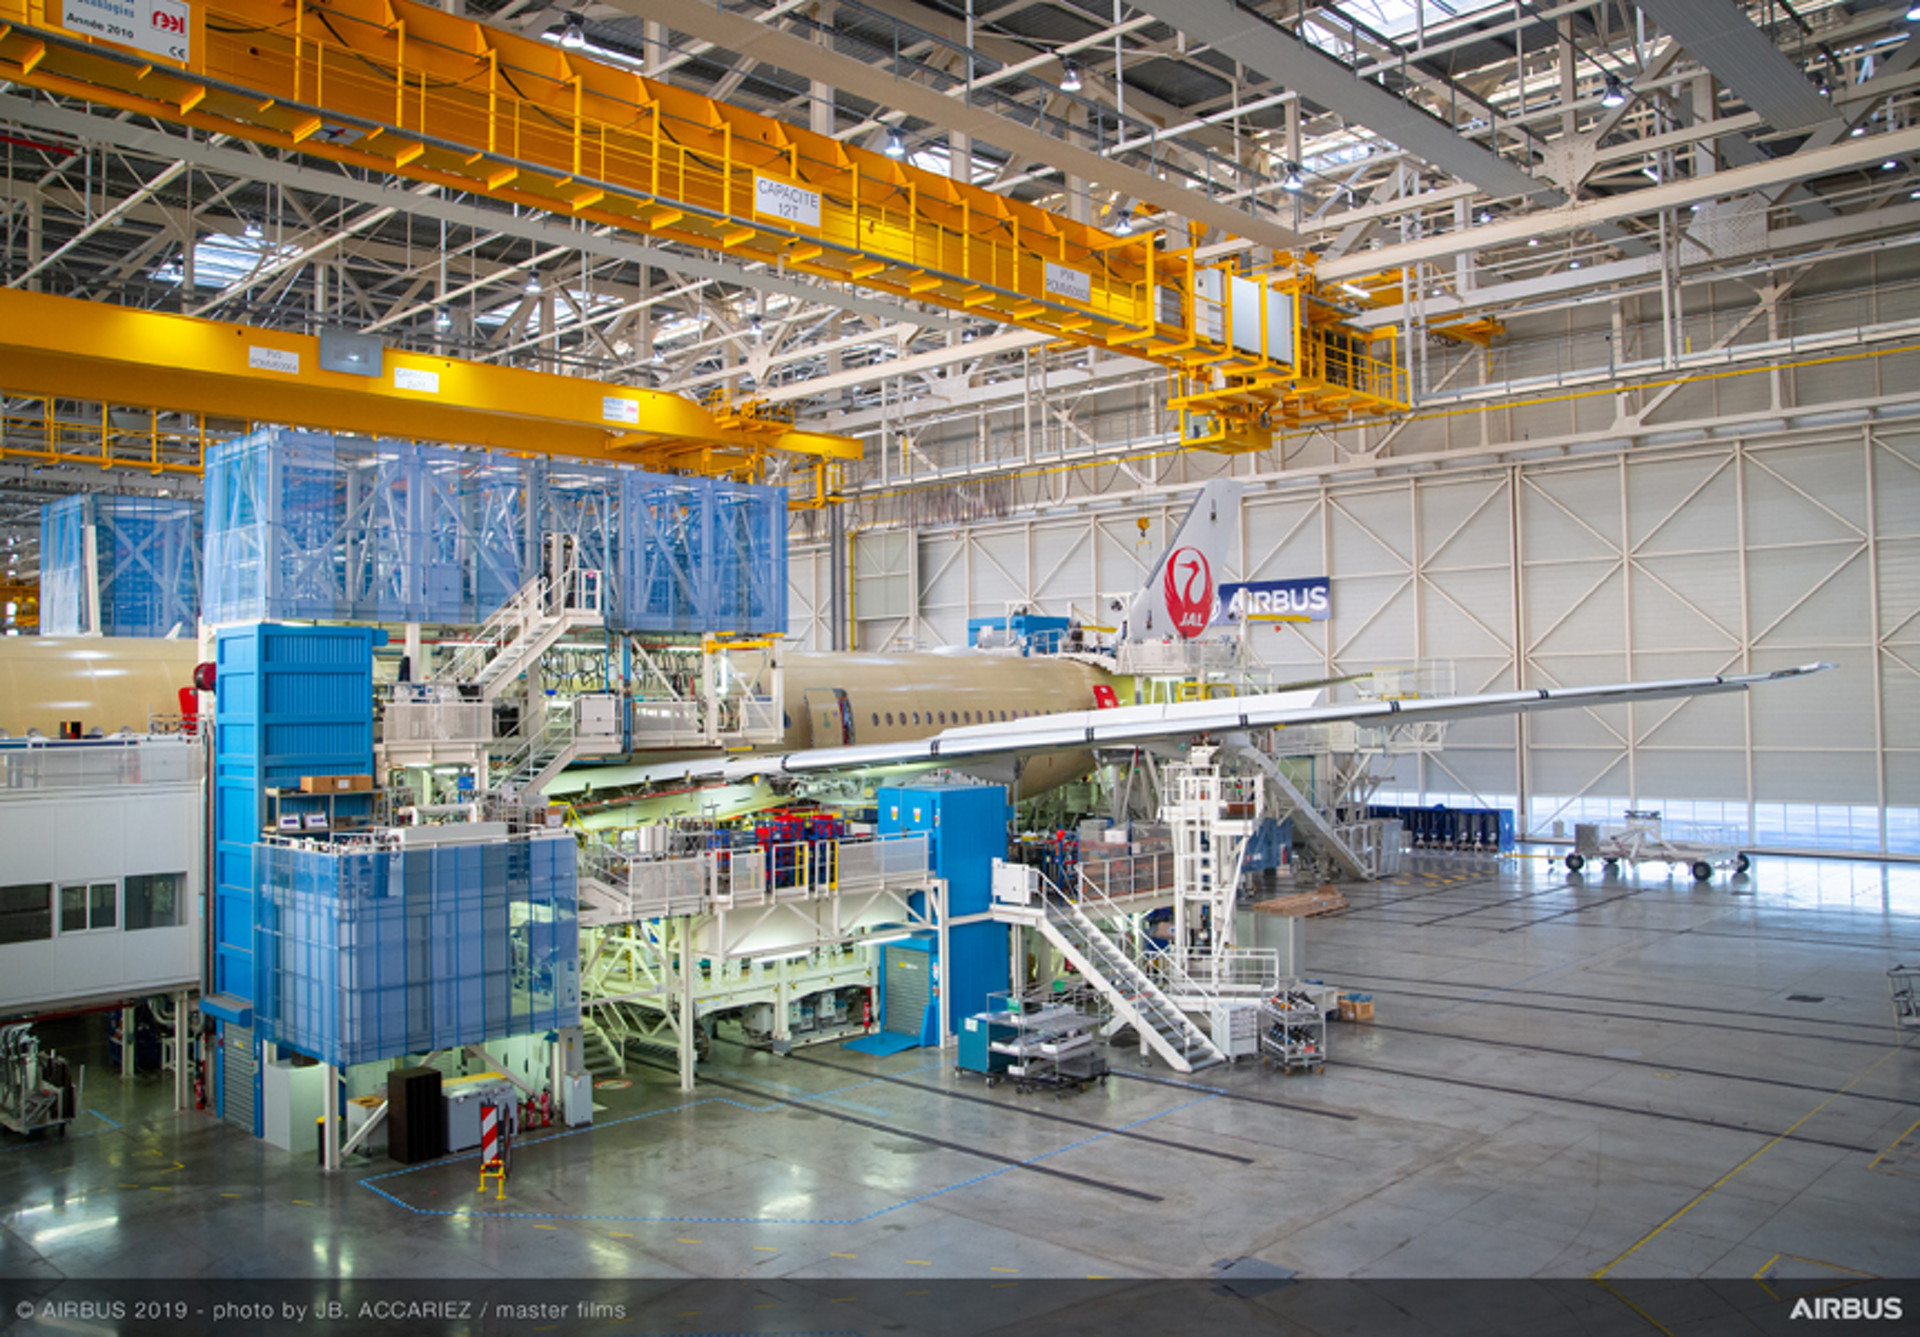 The original A350 XWB for Japan Airlines (the carrier ordered 31 aircraft from the Family) takes shape at the assembly facility in Toulouse, France